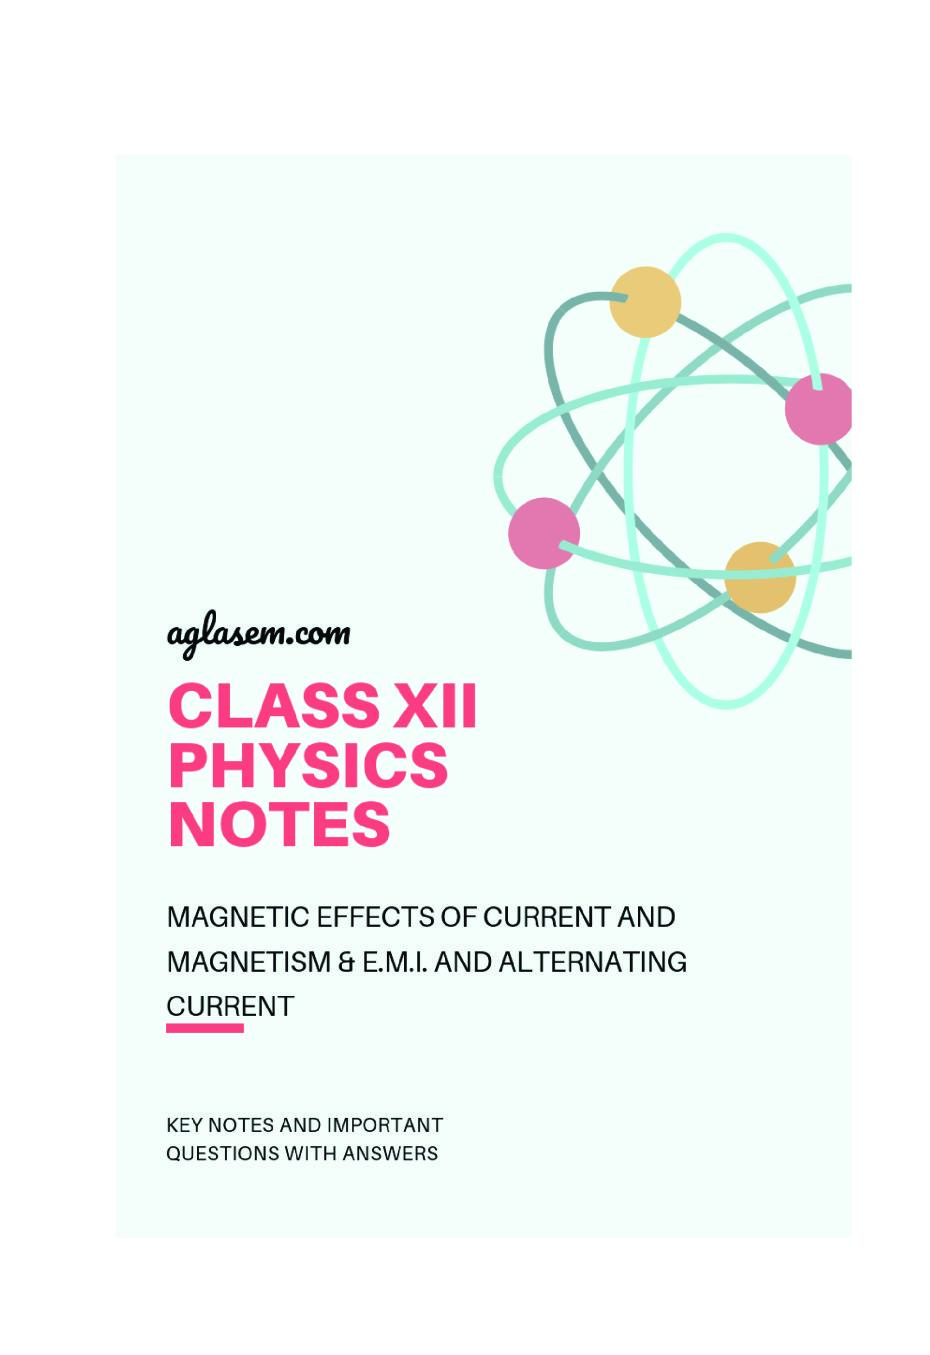 Class 12 Physics Notes for Magnetic Effects of Current And Magnetism and E.M.I. and Alternating Current